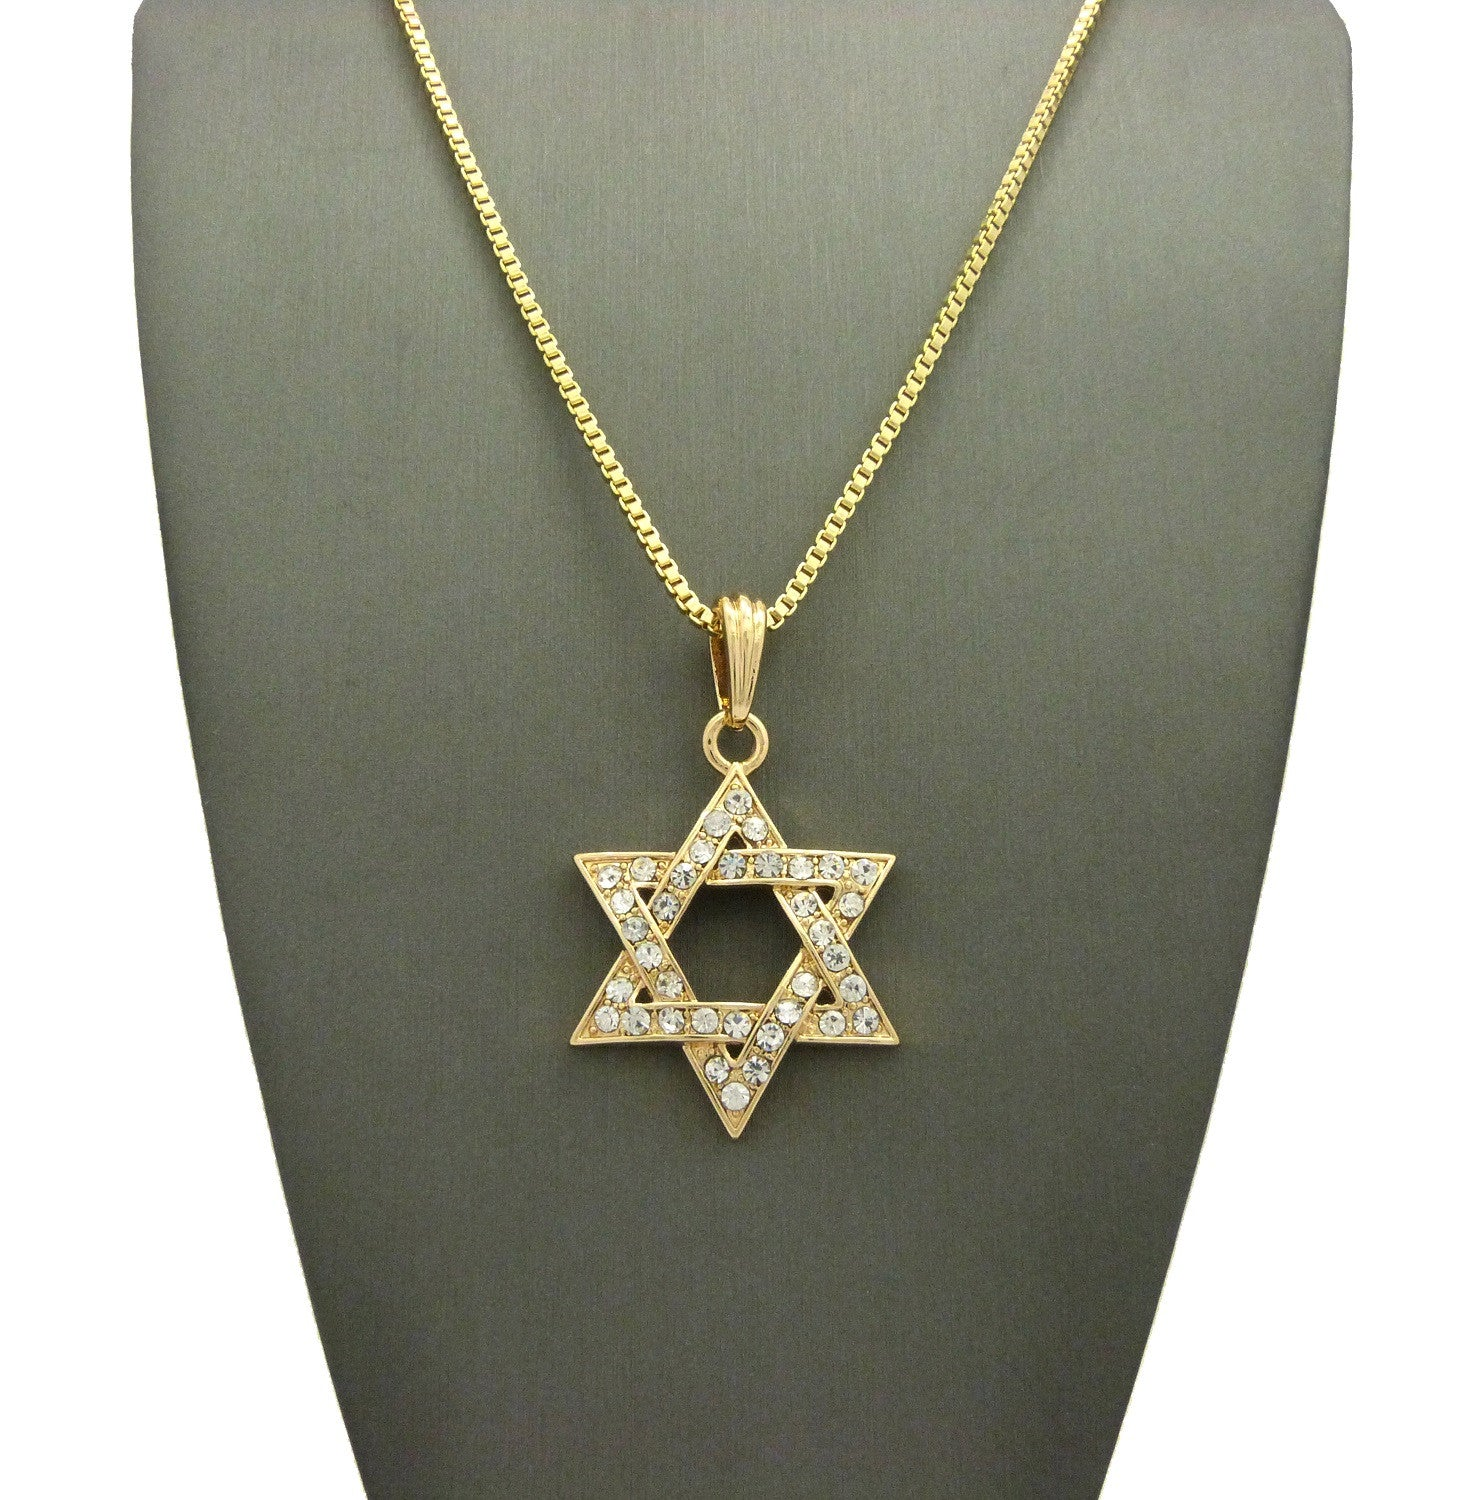 Stone Stud Hollowed Star of David Pendant  Necklace, Gold-Tone